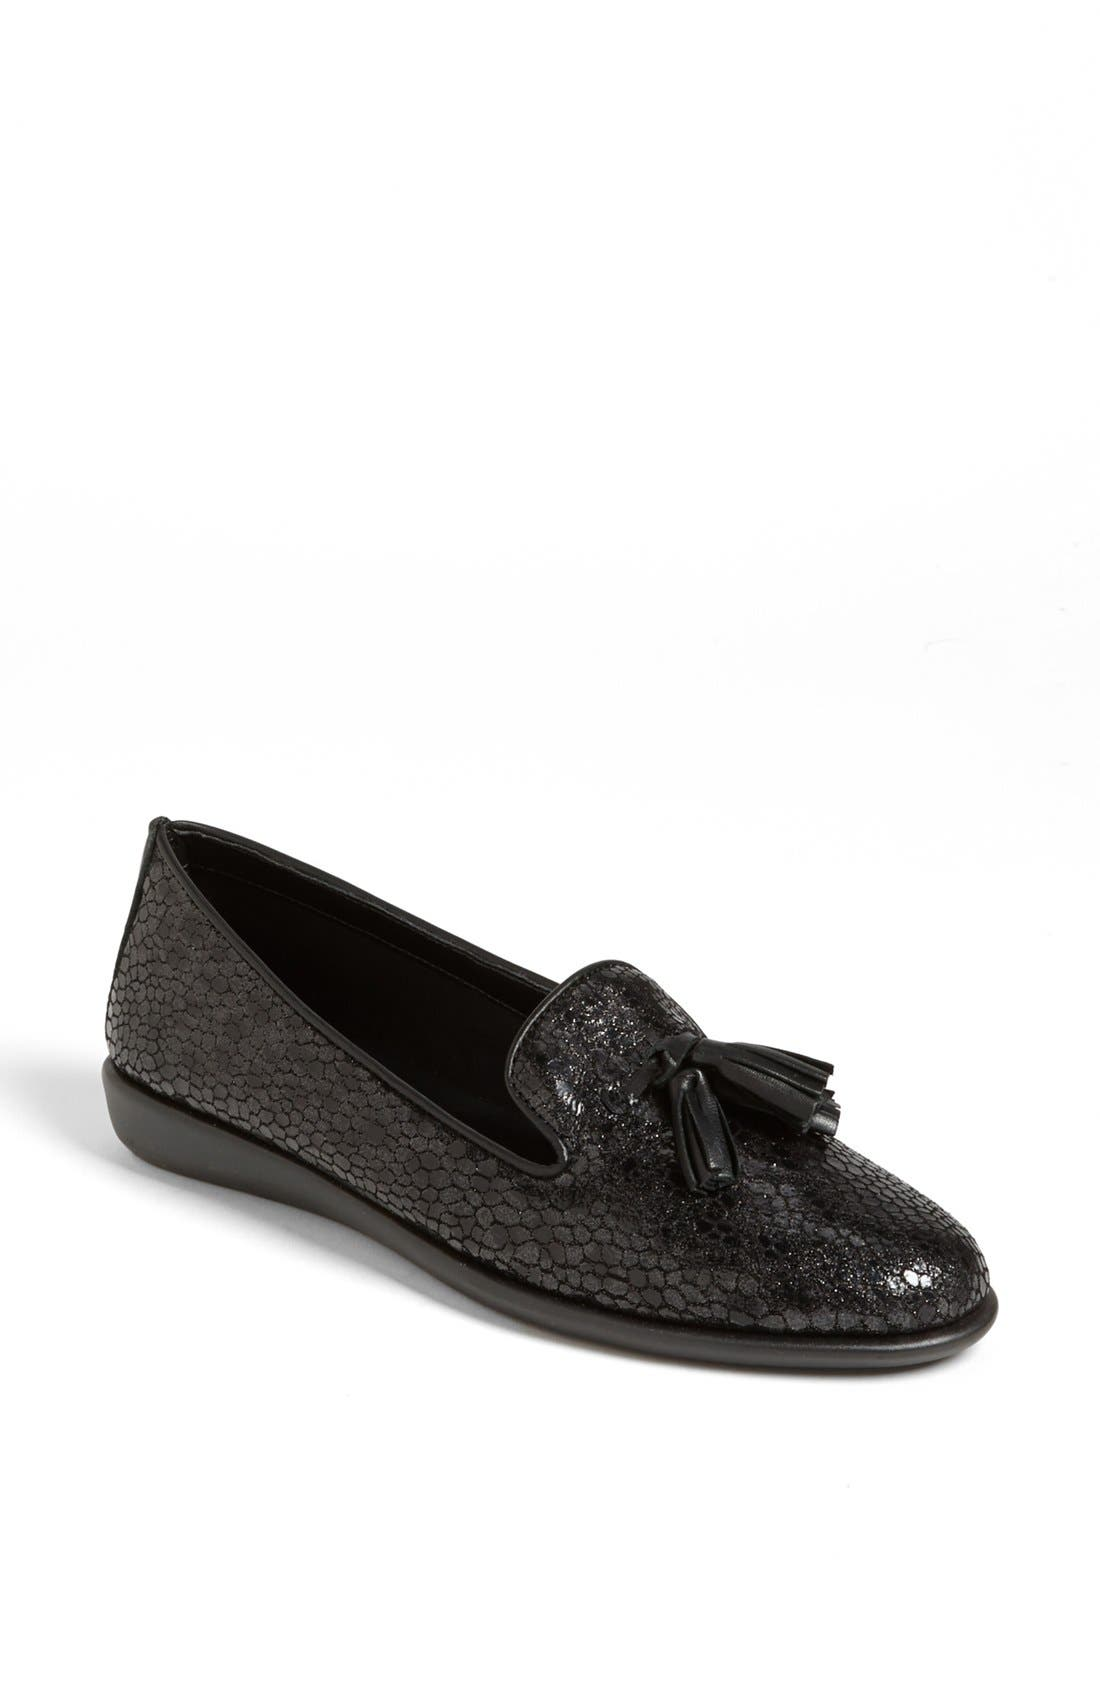 Main Image - The FLEXX 'Memorise' Flat